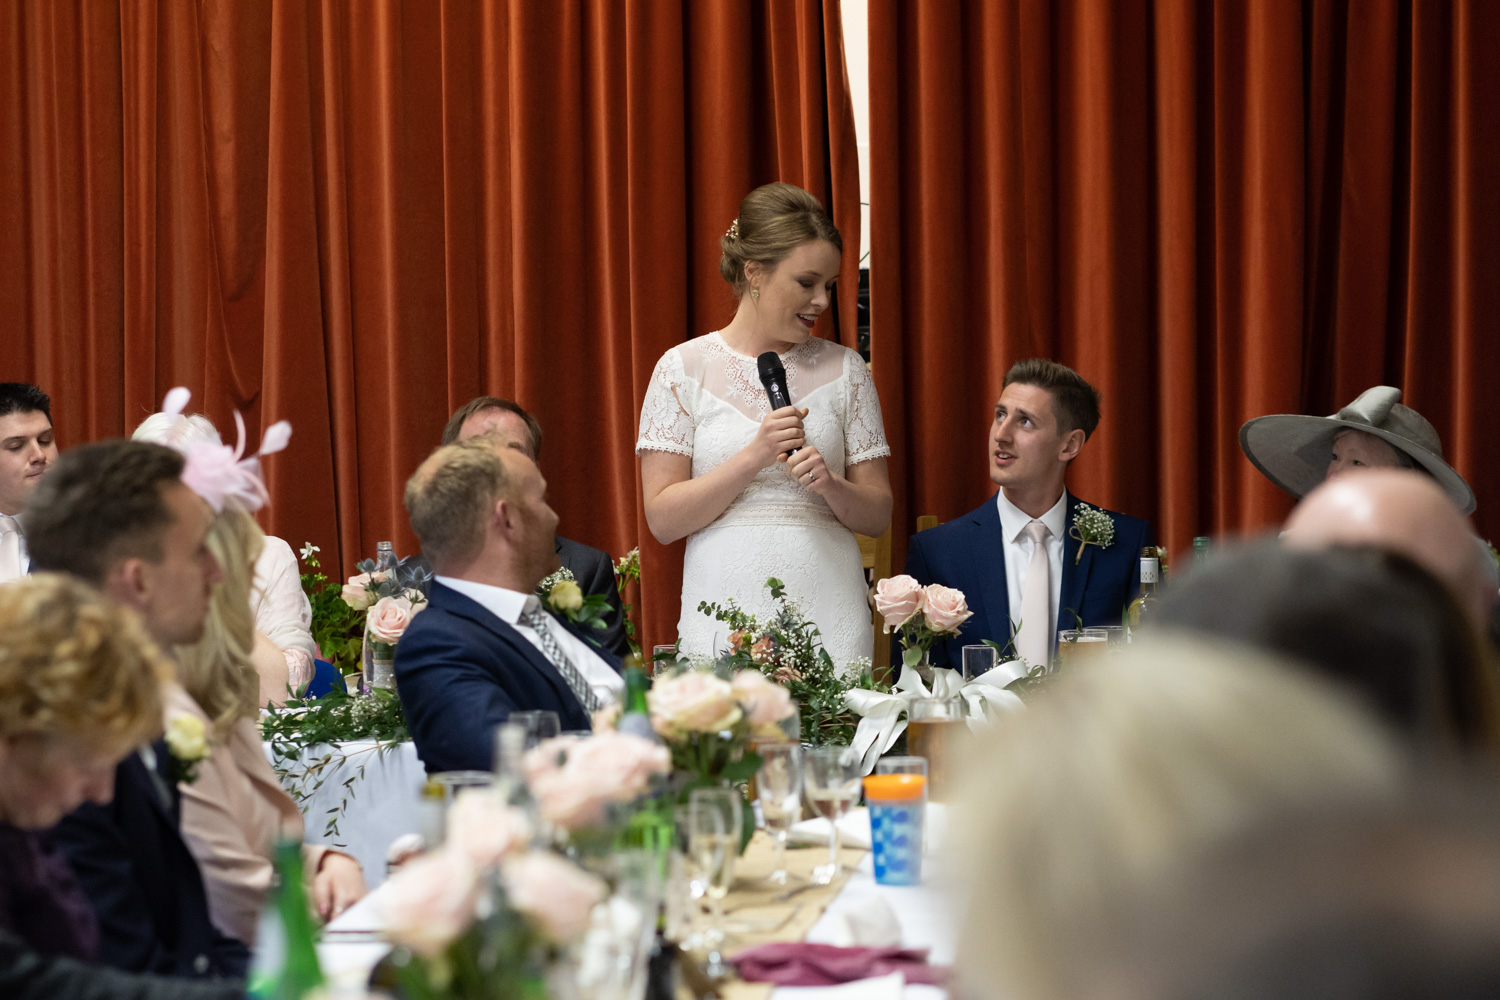 Bride making speech at wedding